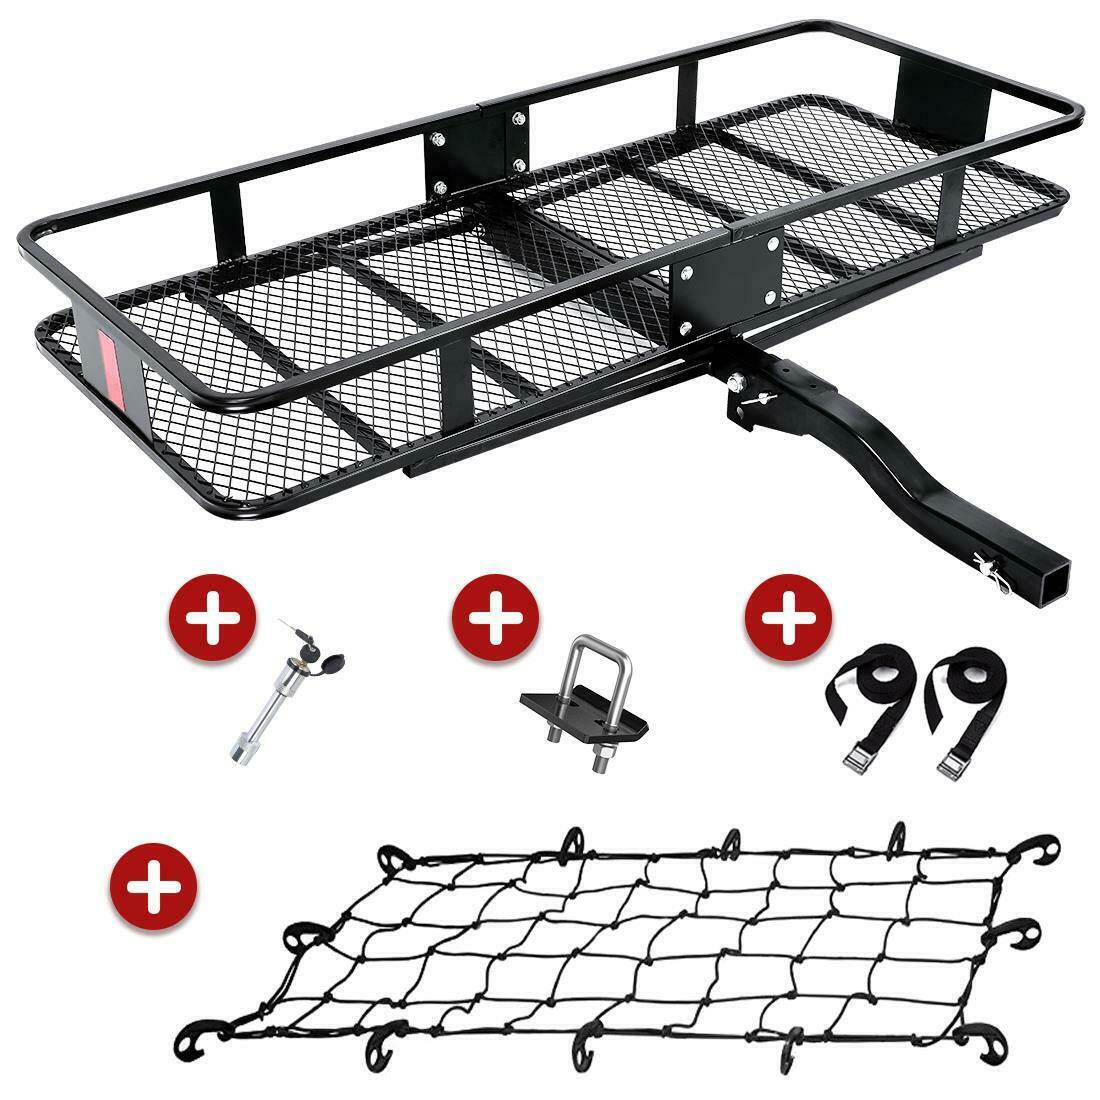 King Bird Upgraded 550lbs Capacity 60 X 24 X 6 Hitch Mount Folding Cargo Carrier Fits To 2 Receiver Heavy Duty Cargo Basket With Trailer Hitch Lock Hitch Stabilizer Net And Straps Walmart Com